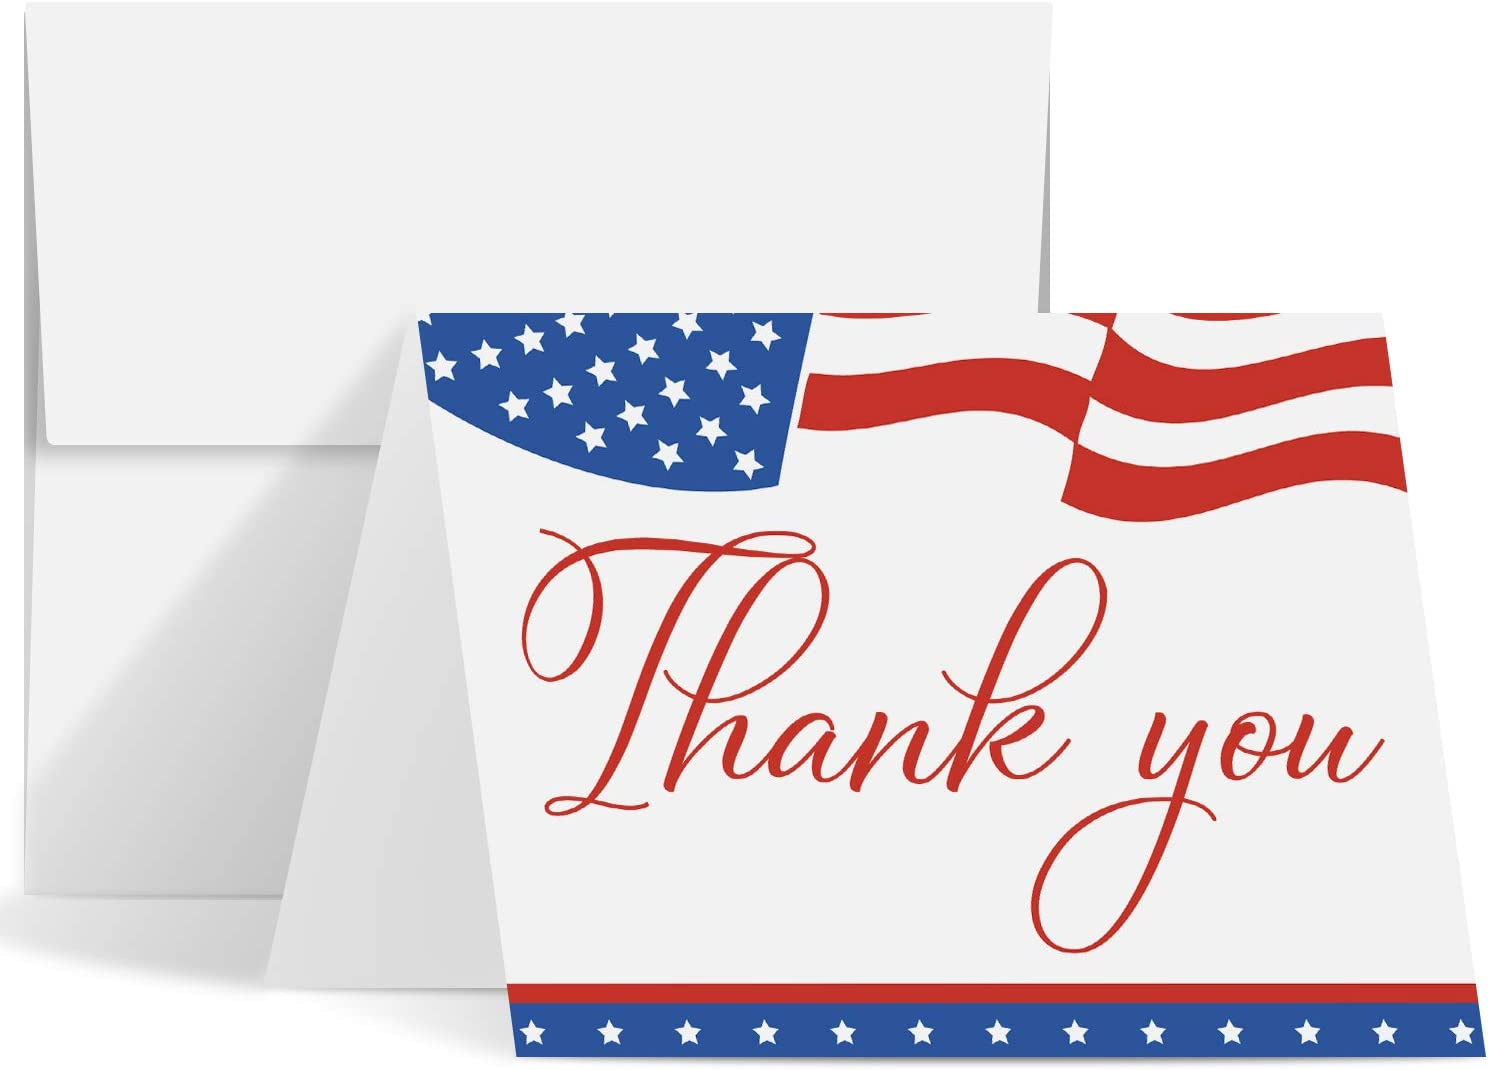 OMG You\u2019re American Now Greeting CARD  Congrats  Citizenship  red Instant Download white and blue  5x7 Folded Card \u2013 Printable DIY